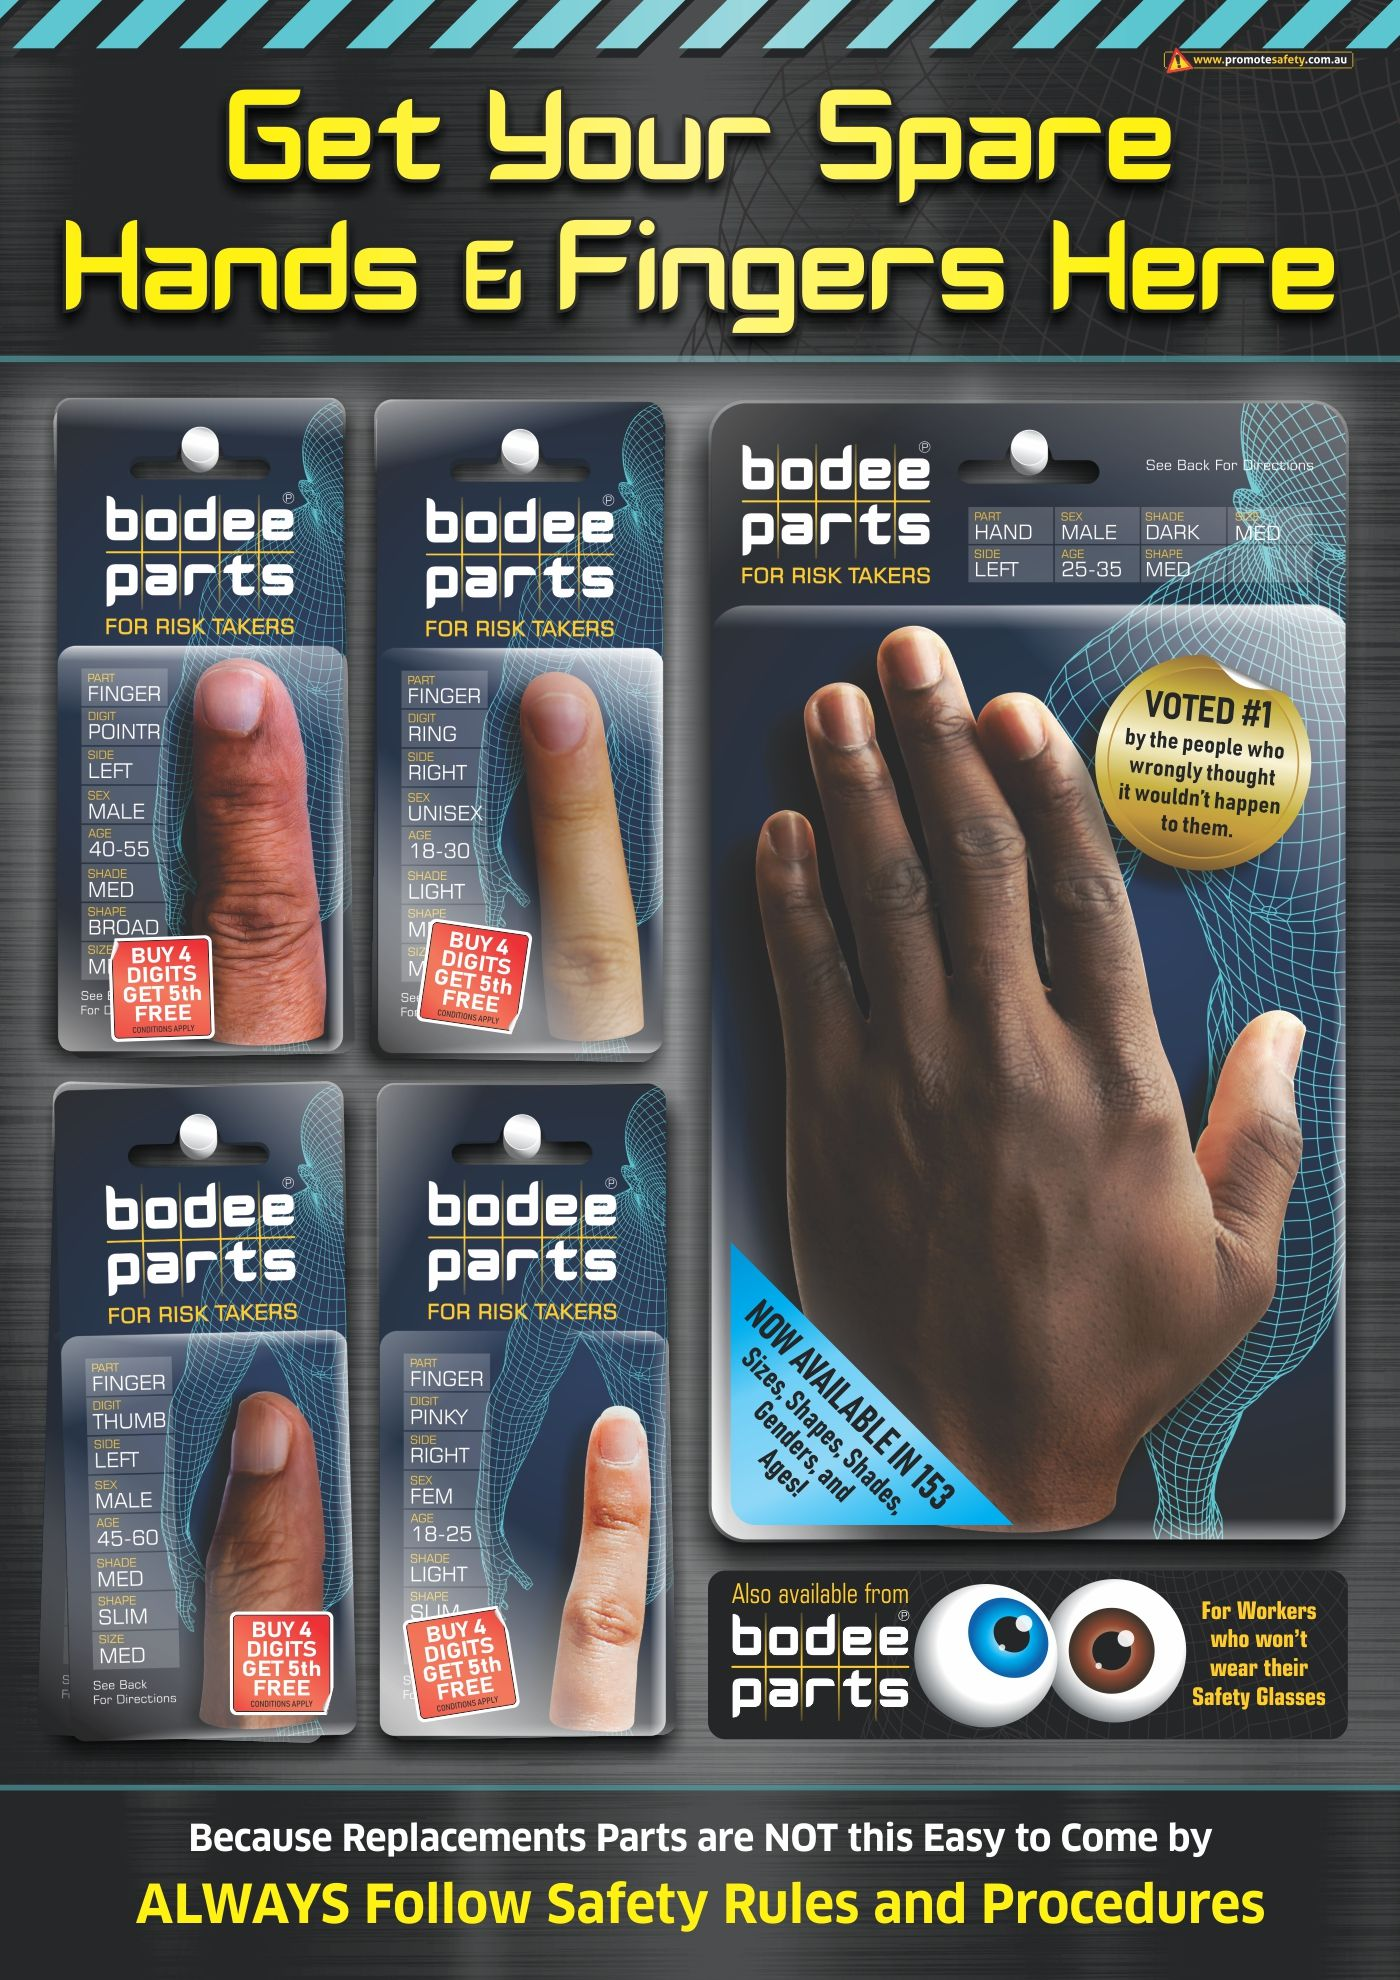 Finger Hand And Wrist Injuries Are Among The Most Common In Many